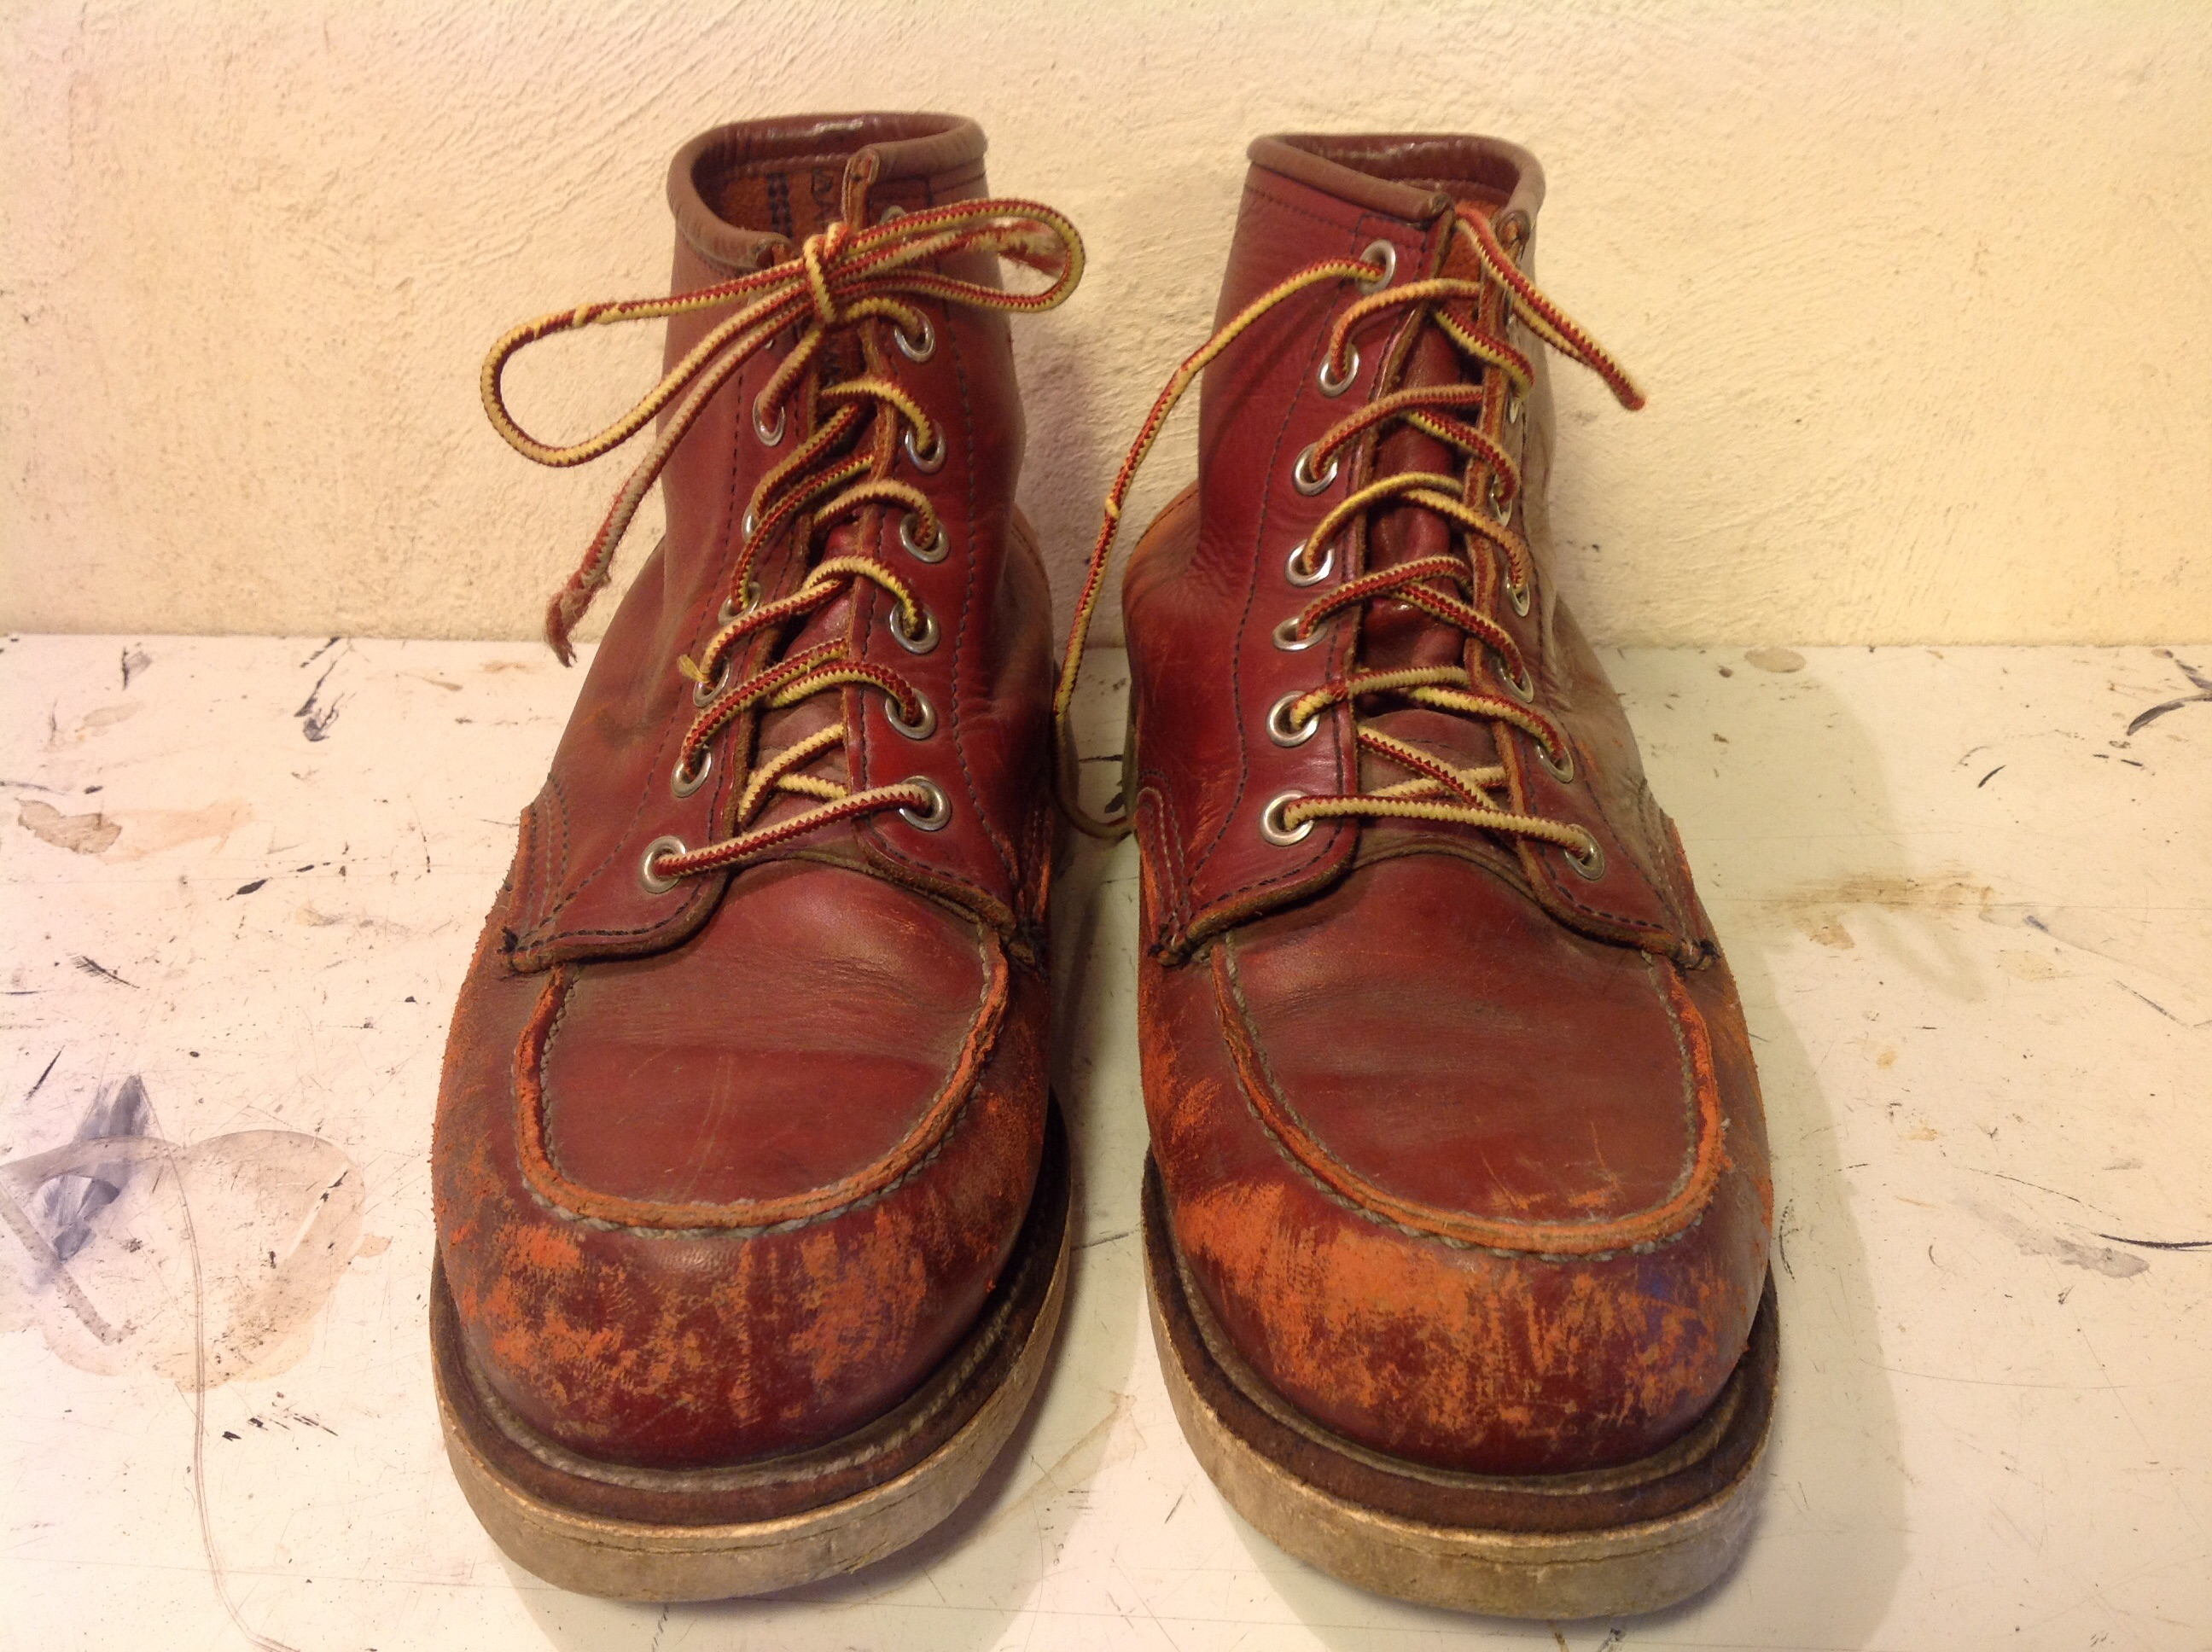 RED WING レッドウイング 8875 ♯4014 ミッドソール交換